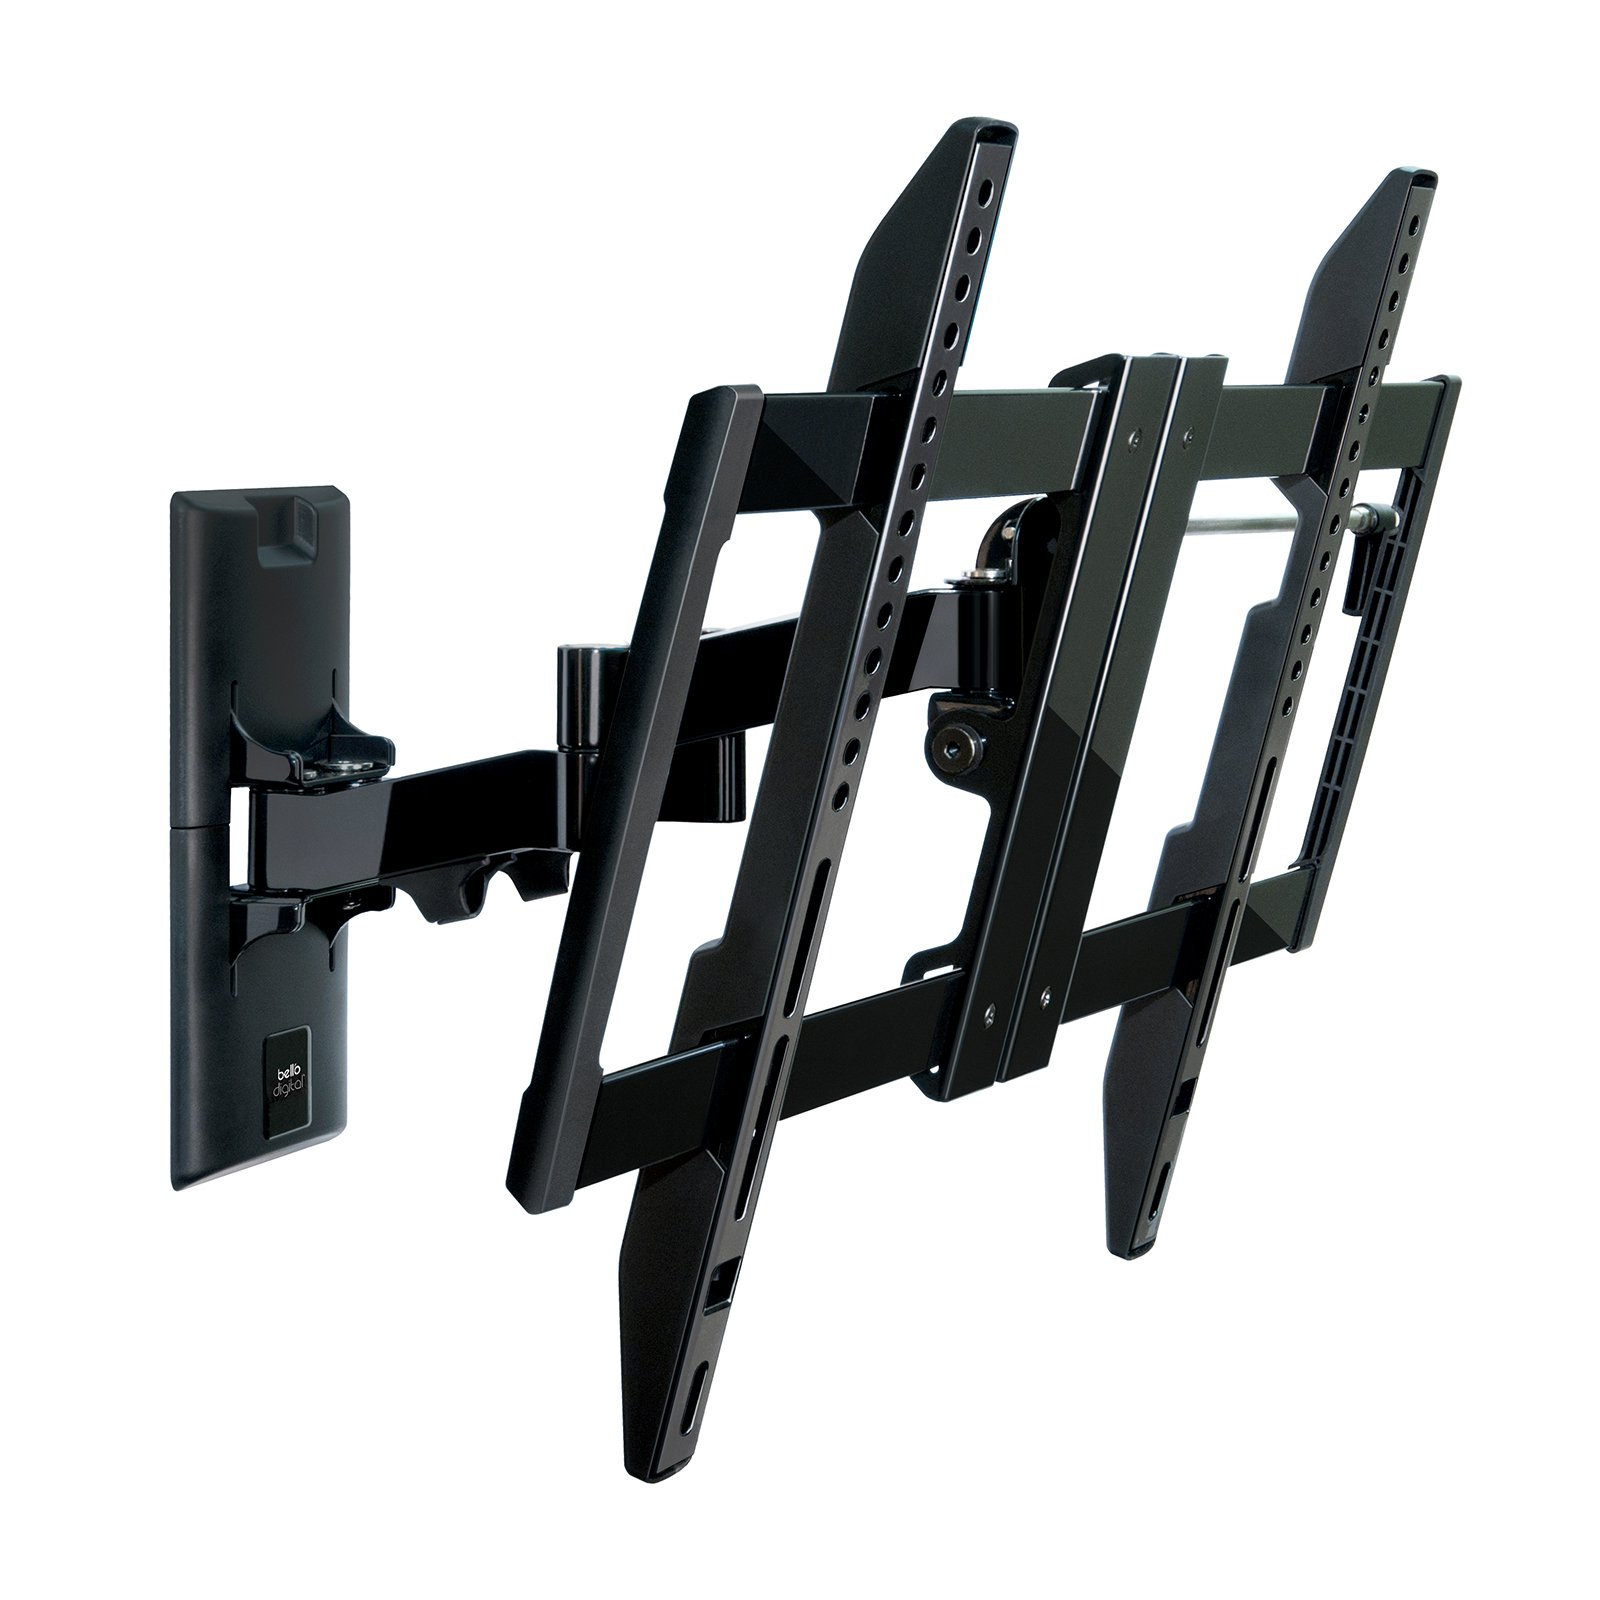 Bell'O Extending Wall Mount for 32 - 55 in. TVs